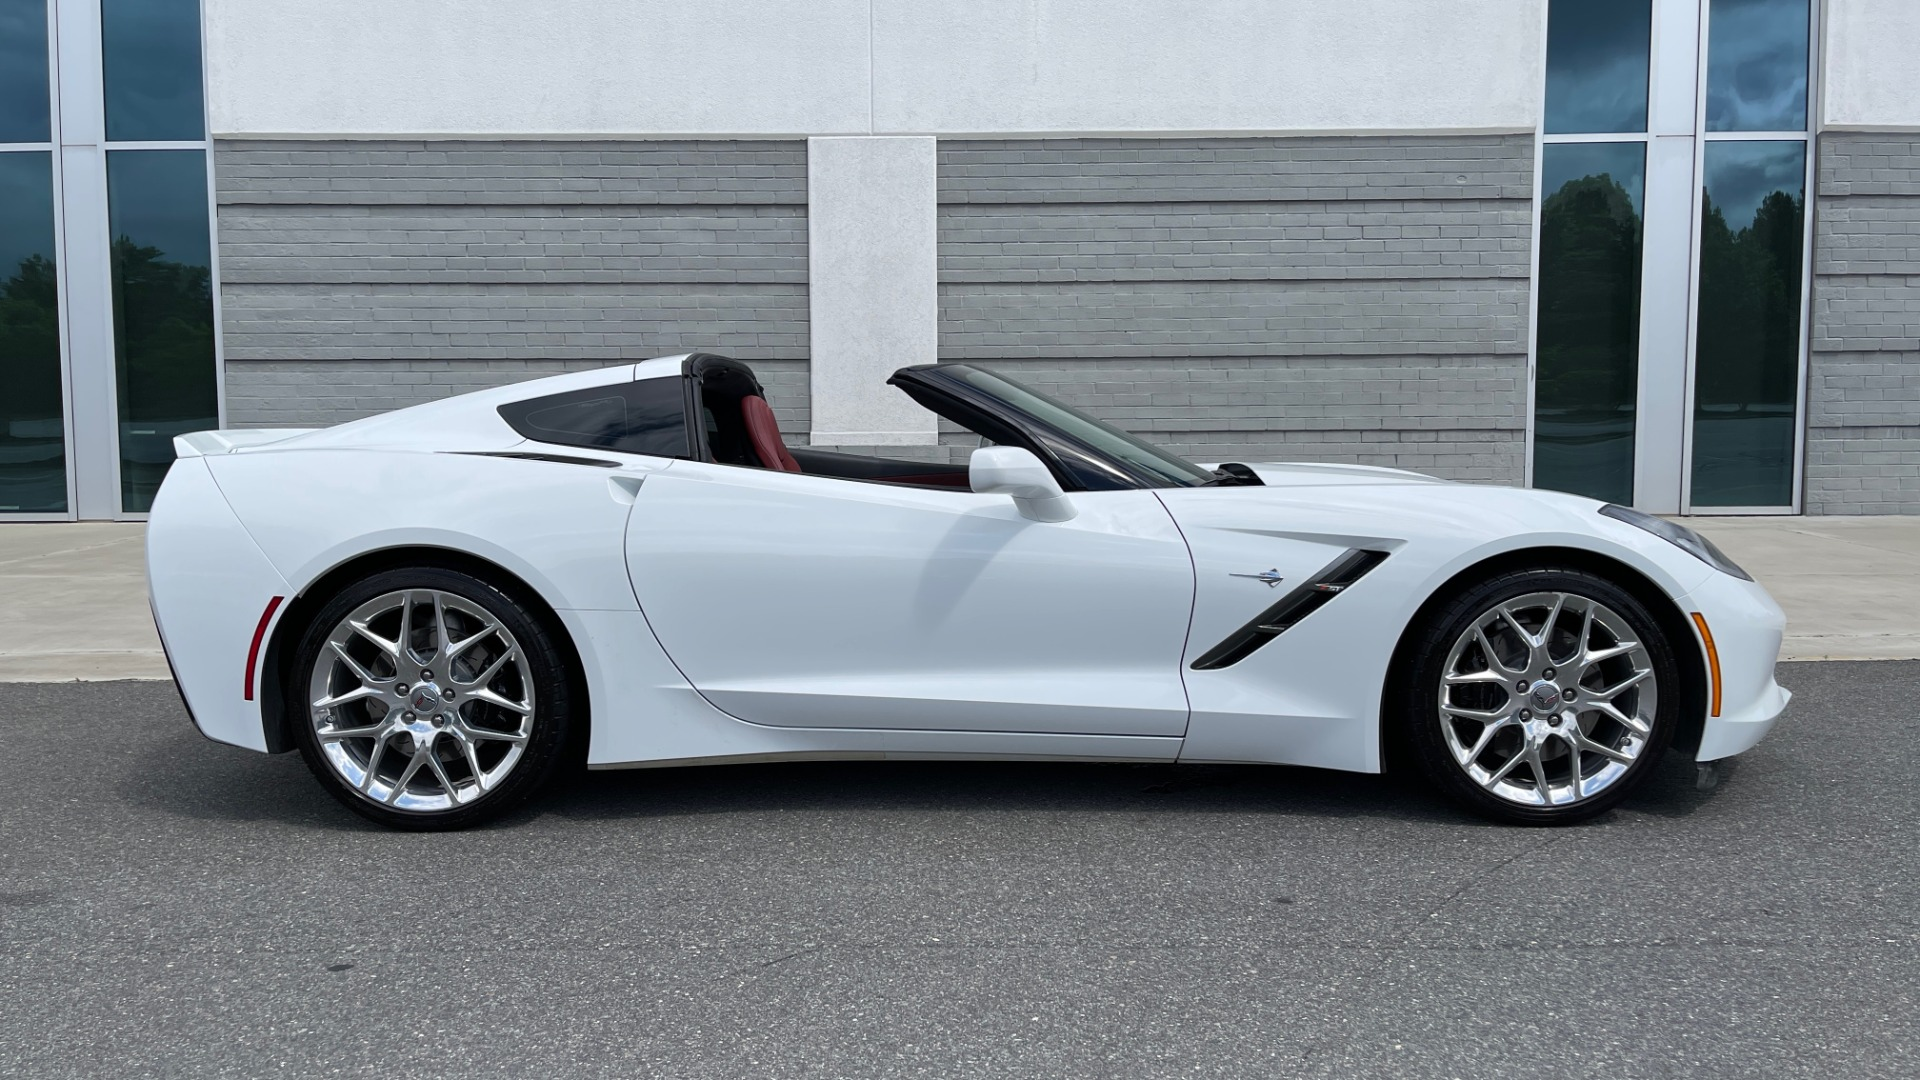 Used 2016 Chevrolet CORVETTE C7 STINGRAY COUPE Z51 3LT / NAV / PERF TRACTION MGMT / REARVIEW for sale Sold at Formula Imports in Charlotte NC 28227 9